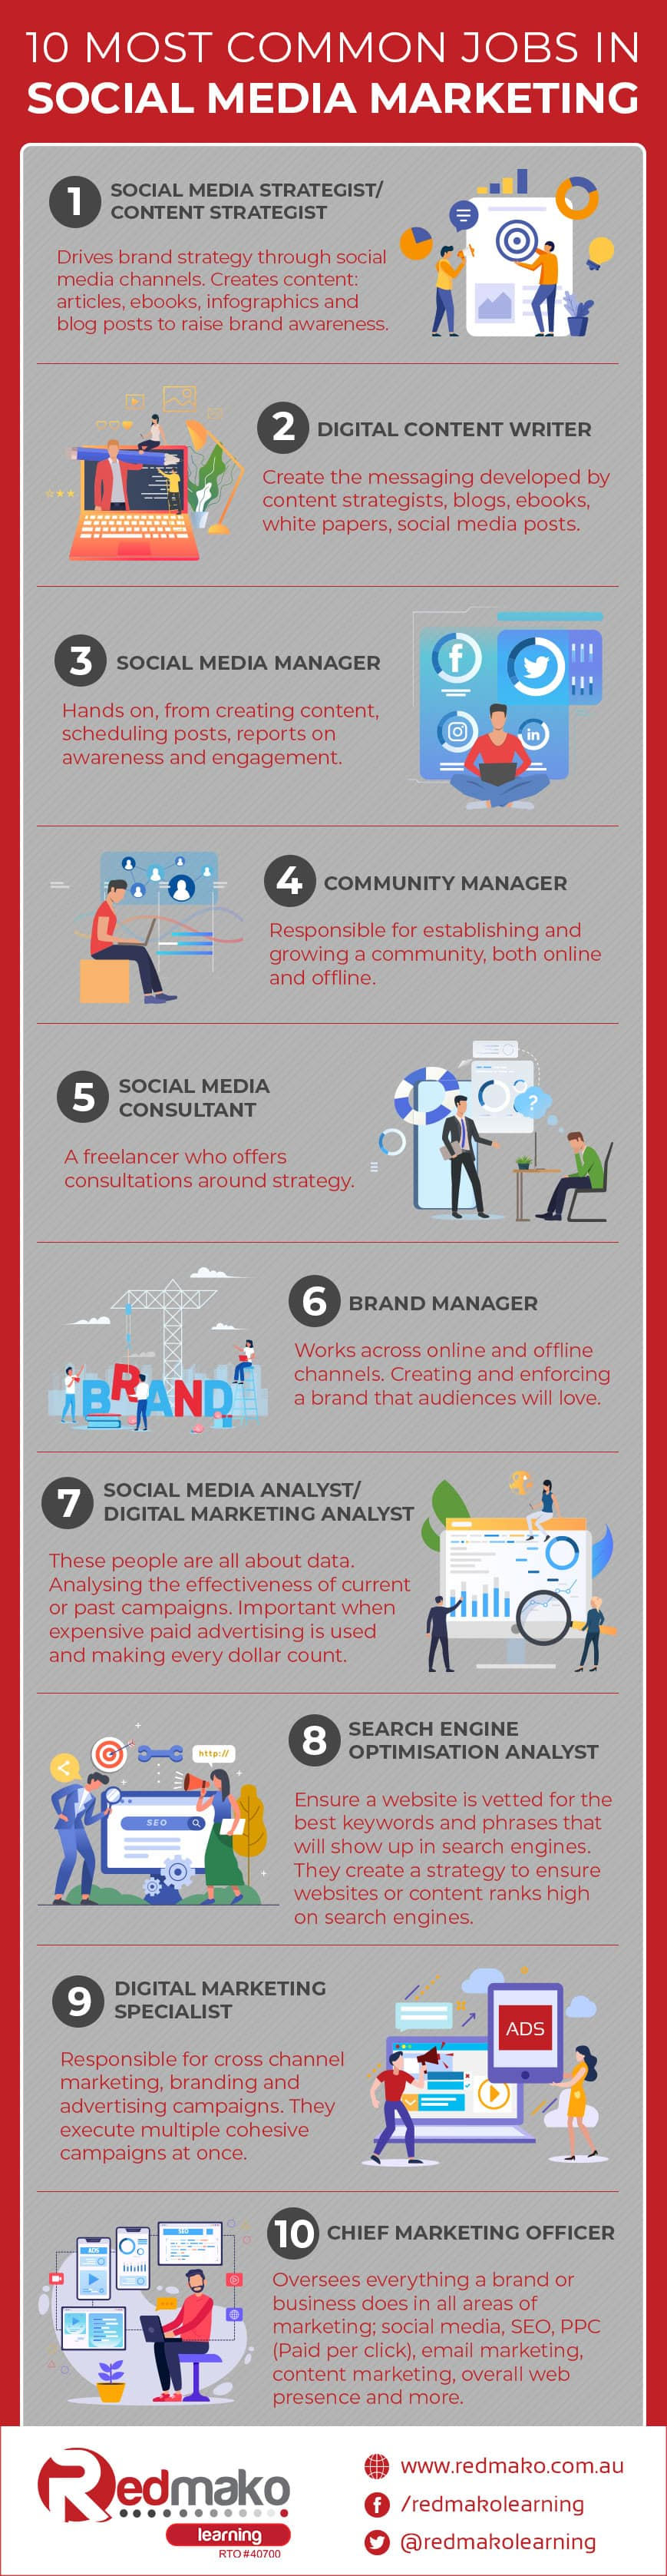 10 Most Common Jobs in Social Media Marketing Infographic